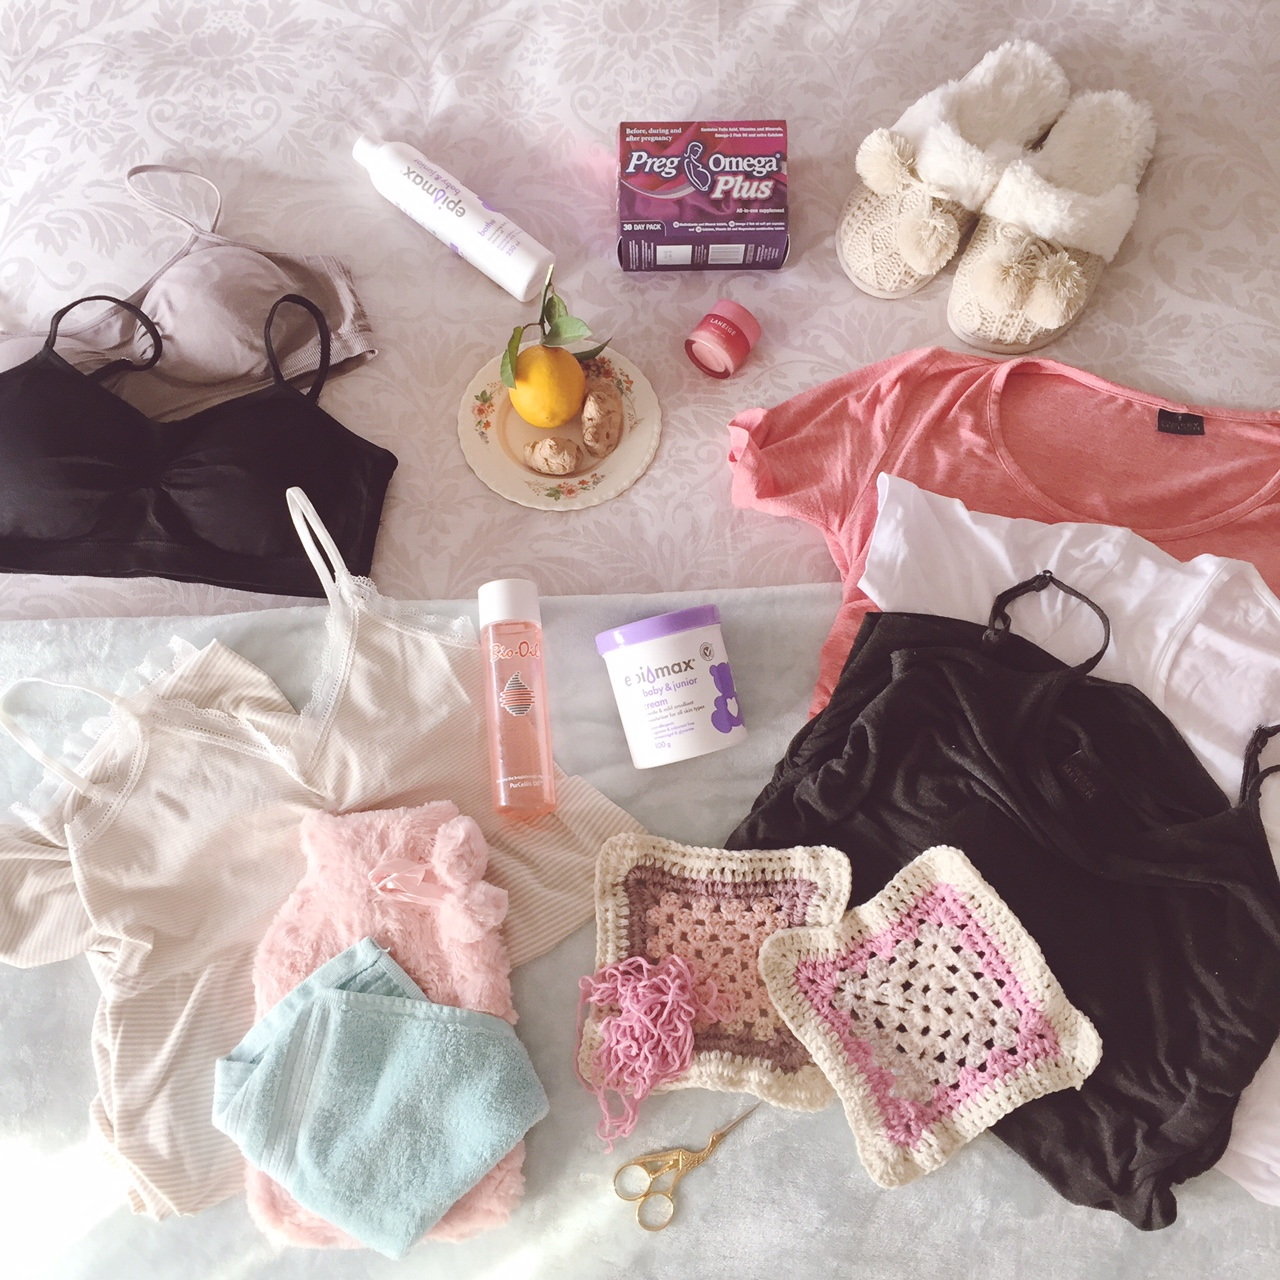 the items that helped make  my pregnancy happy &  comfortable so far